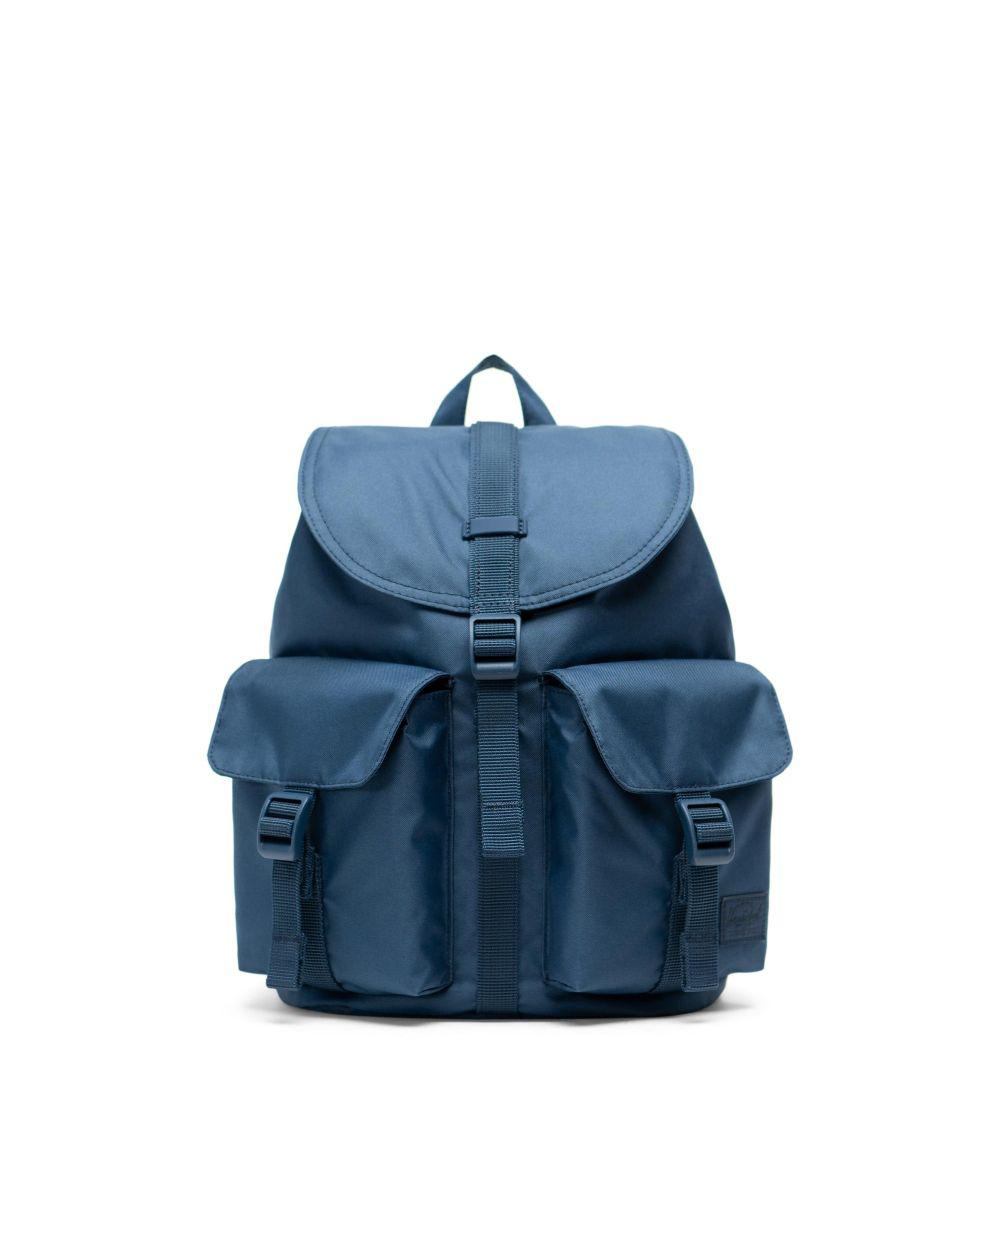 Herschel Supply Co. product